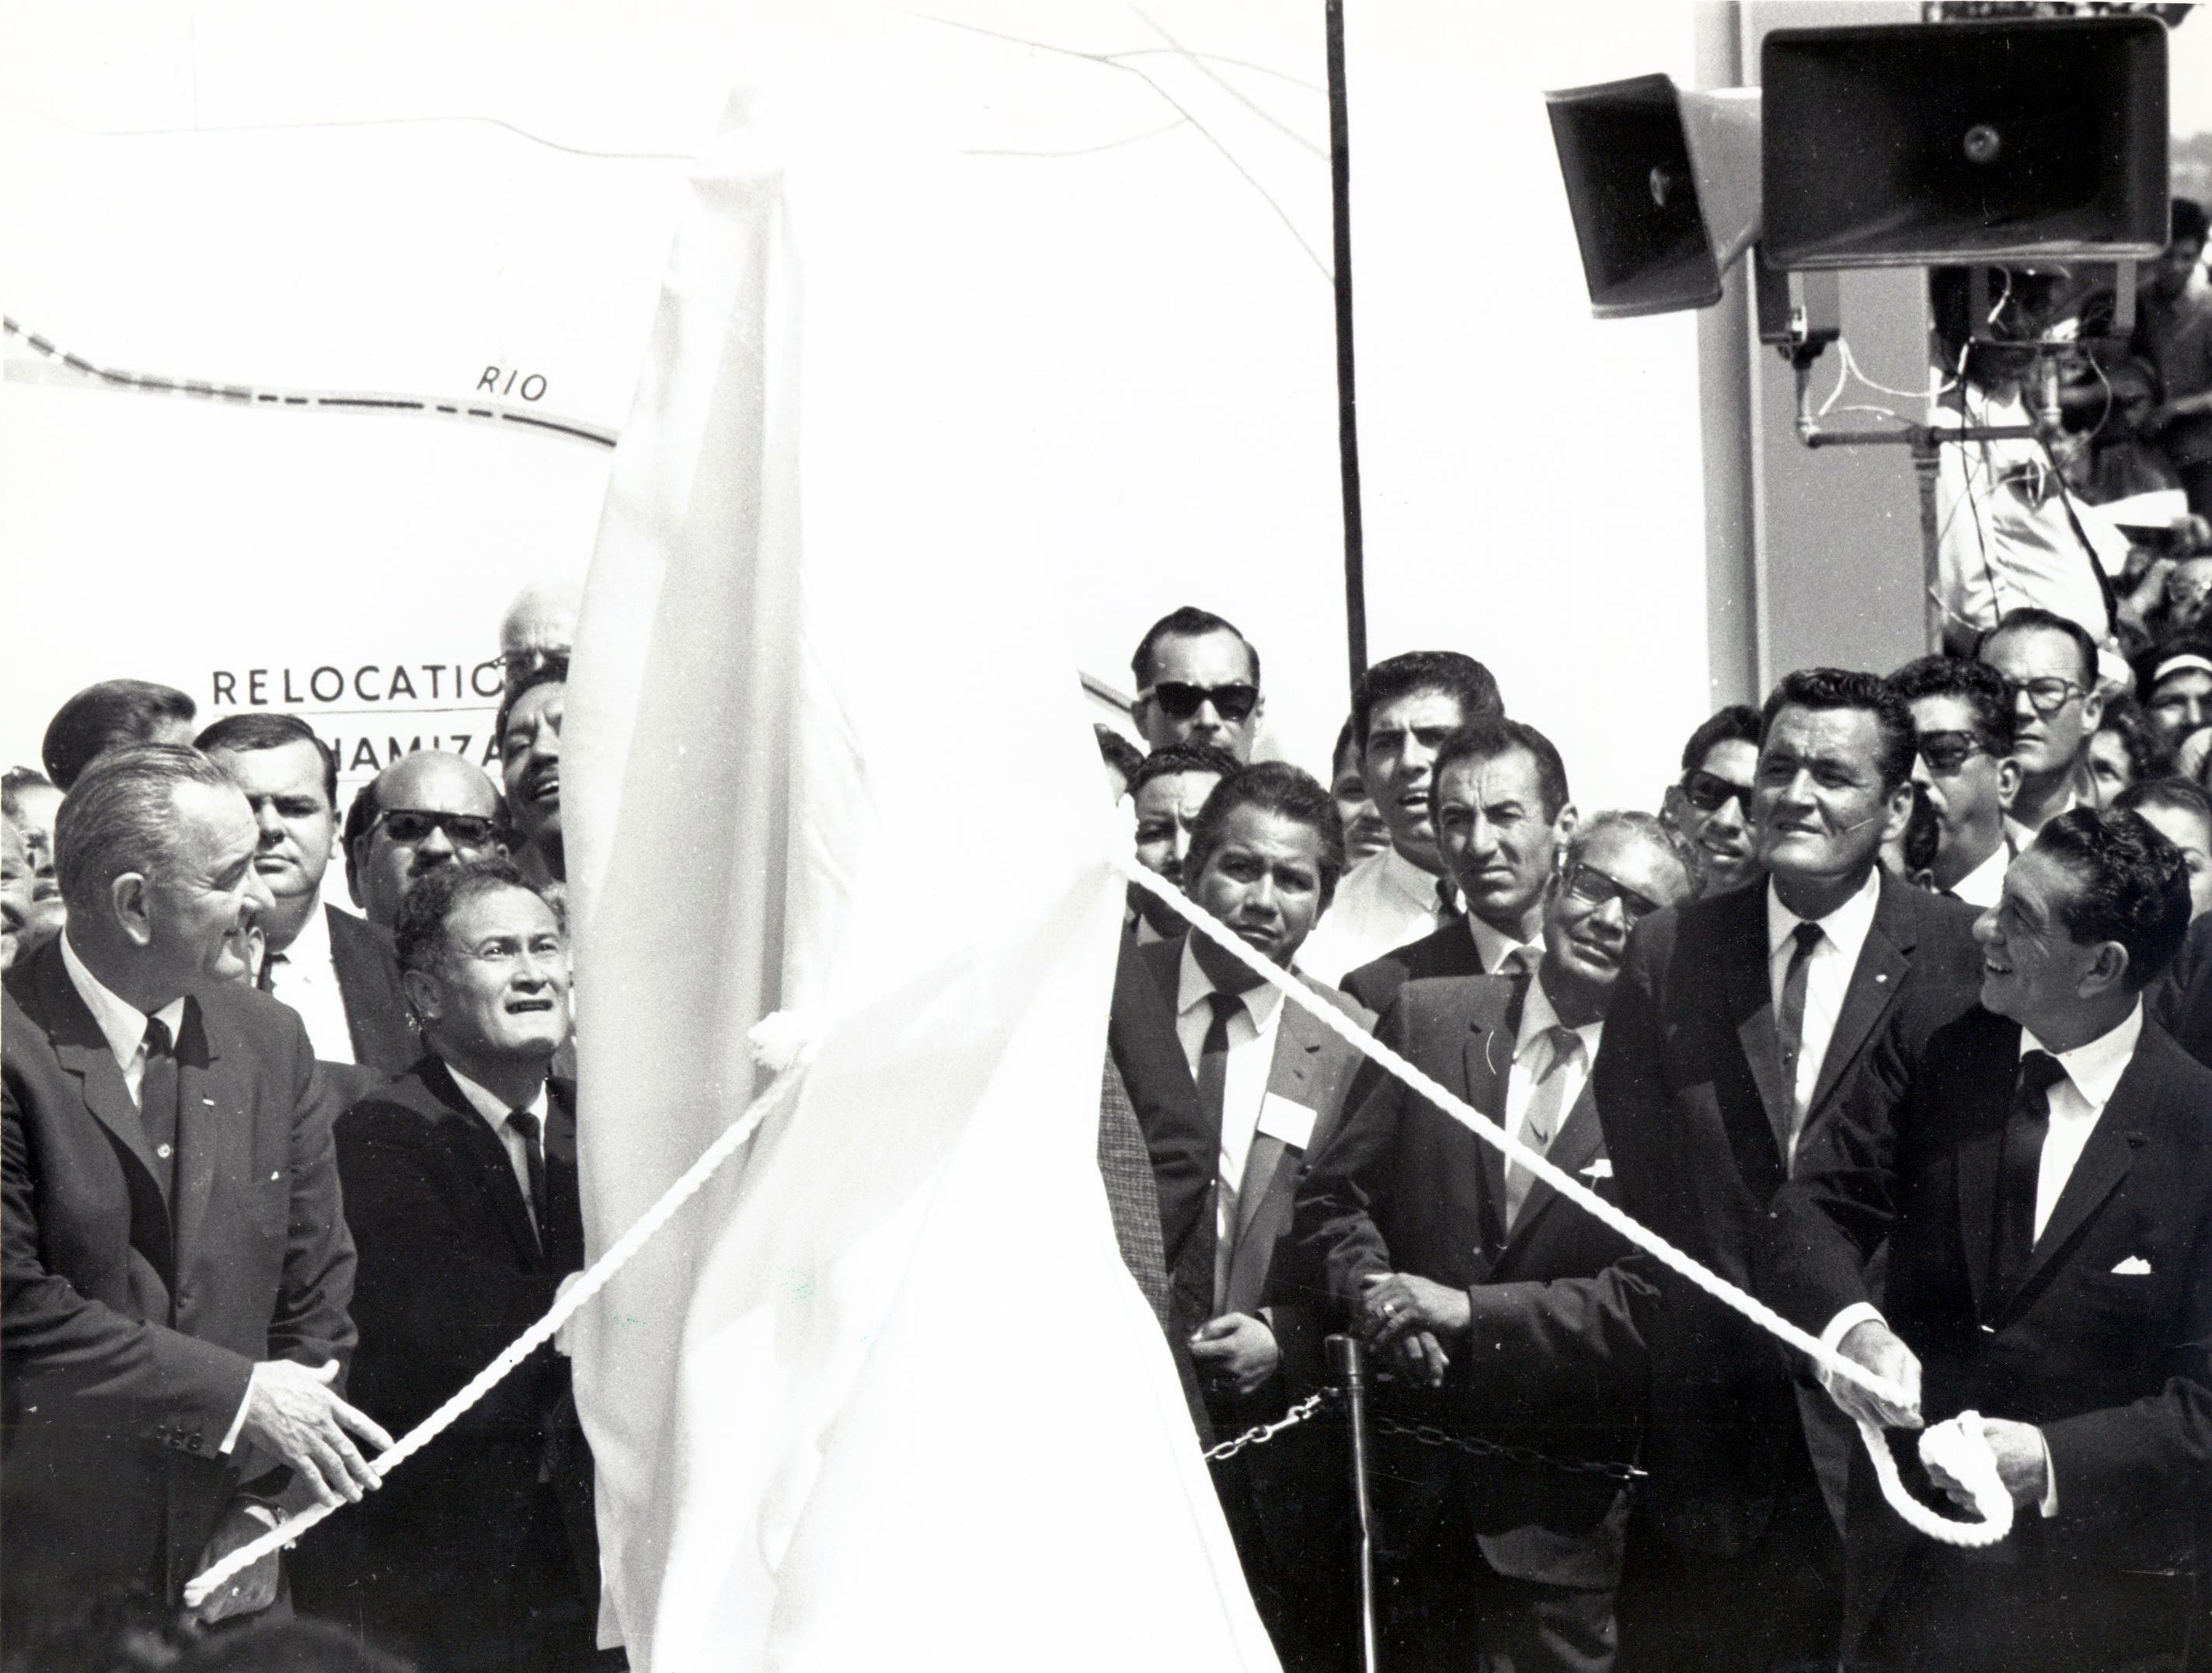 September 25, 1964 - UNVEIL MARKER -- President Lyndon Johnson, left, and Lopez Mateos, right prepare to unveil the shining chrome monument marking the new boundary of Mexico and the United States near Bowie High School. Following the ceremony, the Presidents were given two framed artistic renderings symbolizing settlement of the Chamizal. The drawings, which appeared in The Times Friday, were prepared by Artist Bob Kolliker.